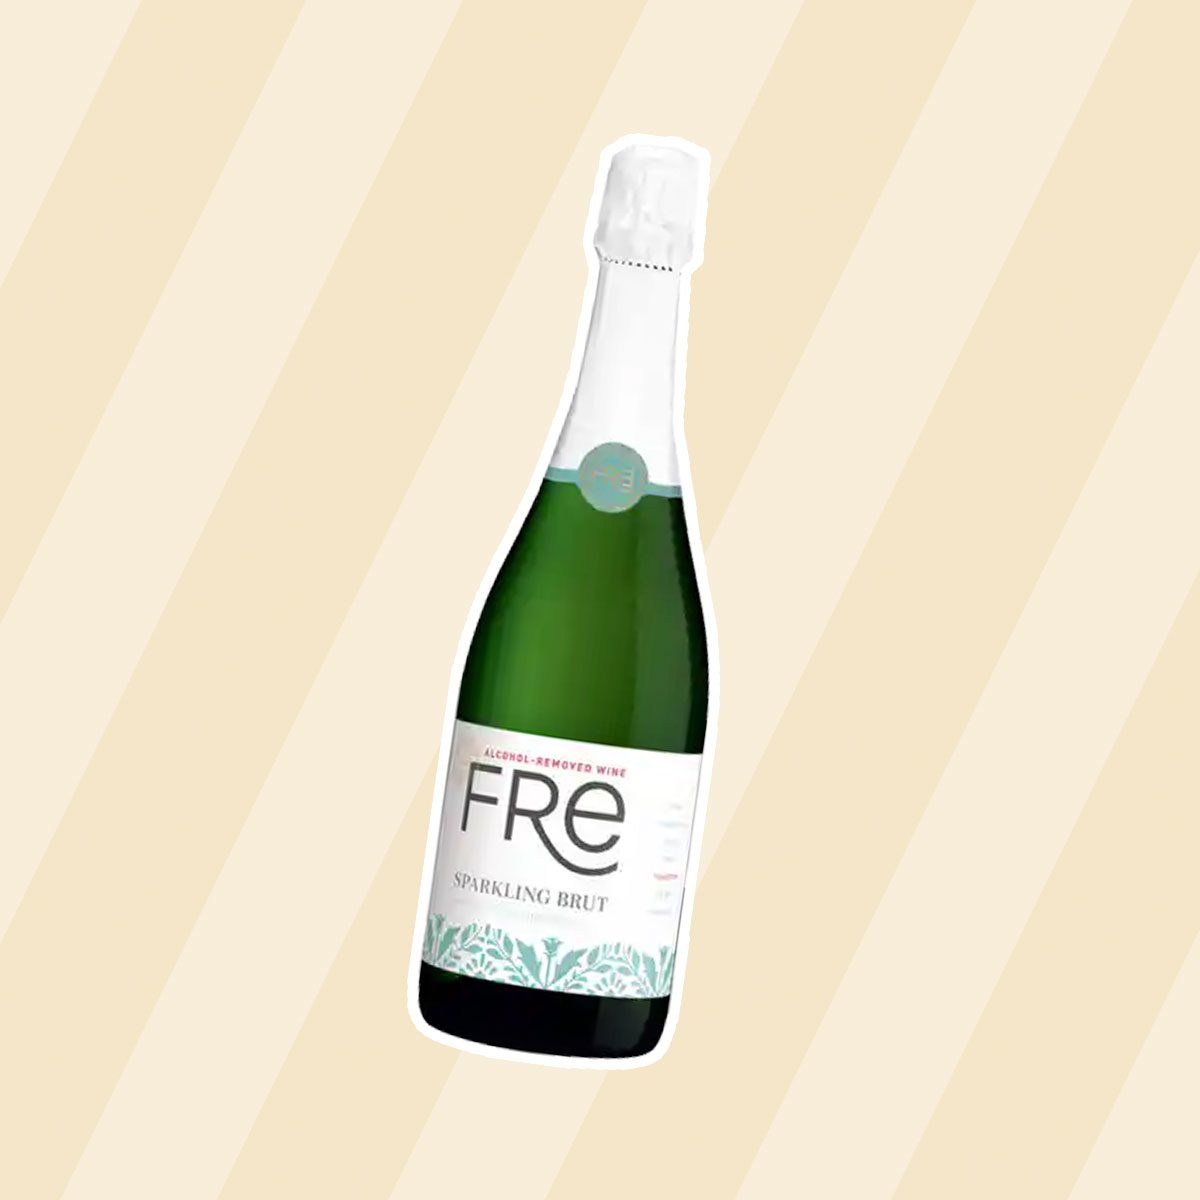 Sutter Homes Fre Alcohol-Removed Brut